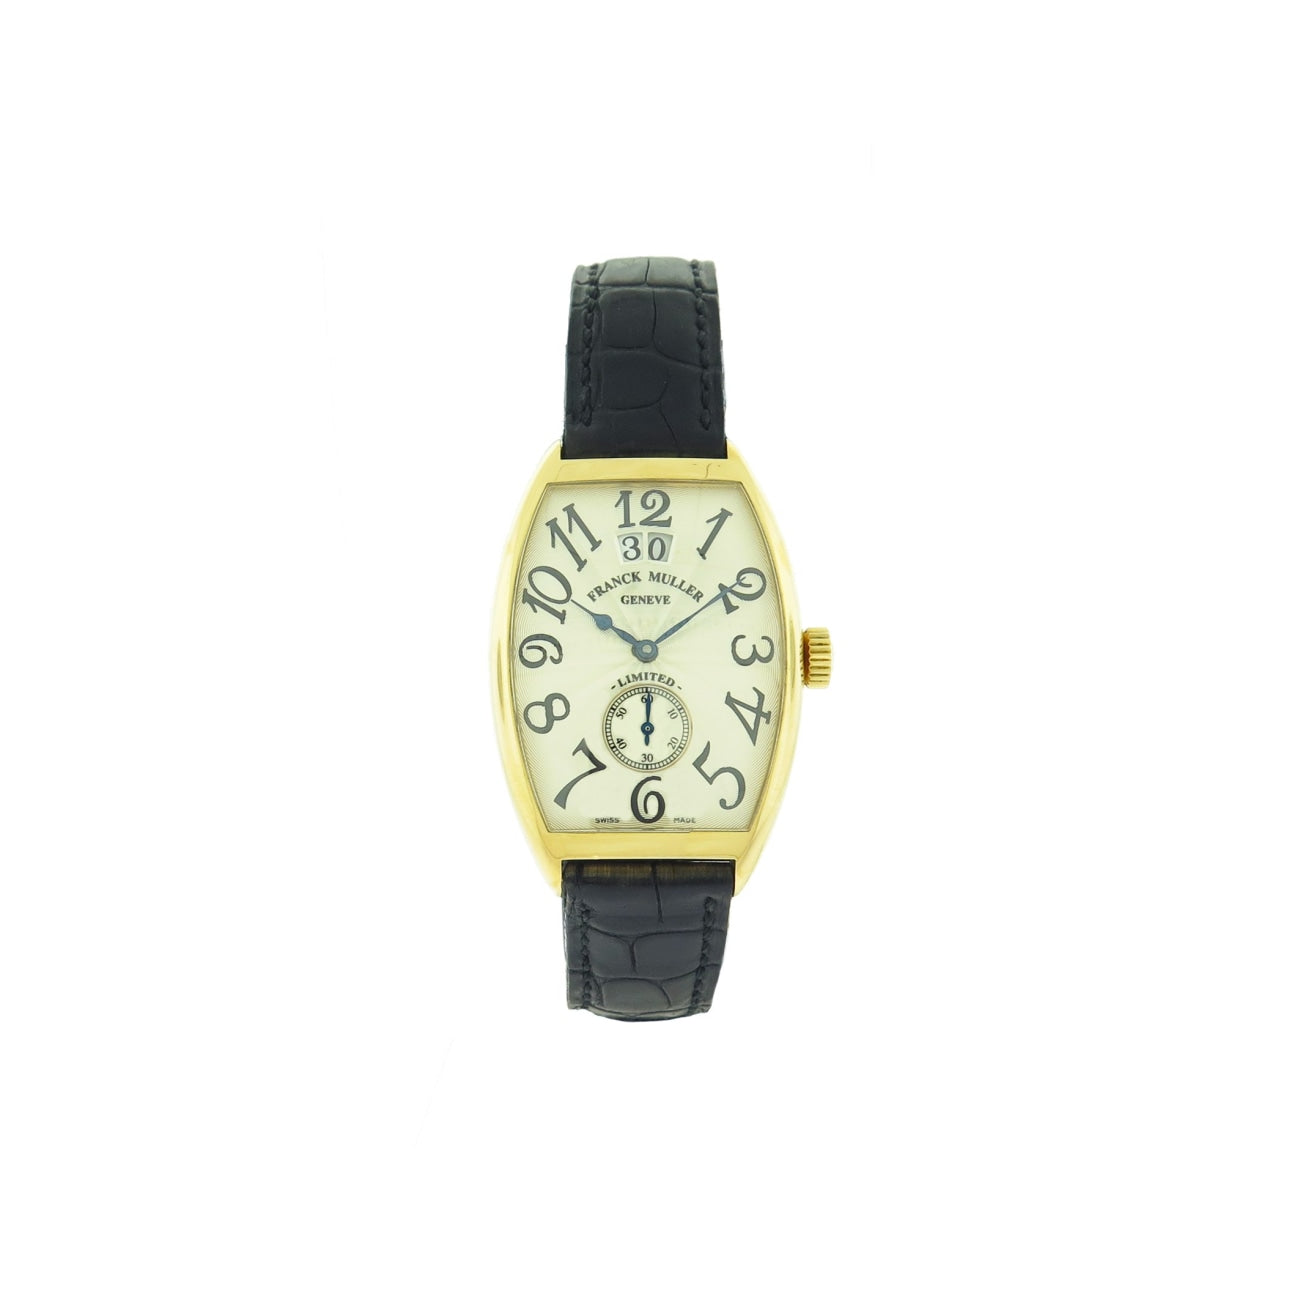 Pre-Owned Franck Muller Pre-Owned Watches - Curvex 2851 S6 | Manfredi Jewels